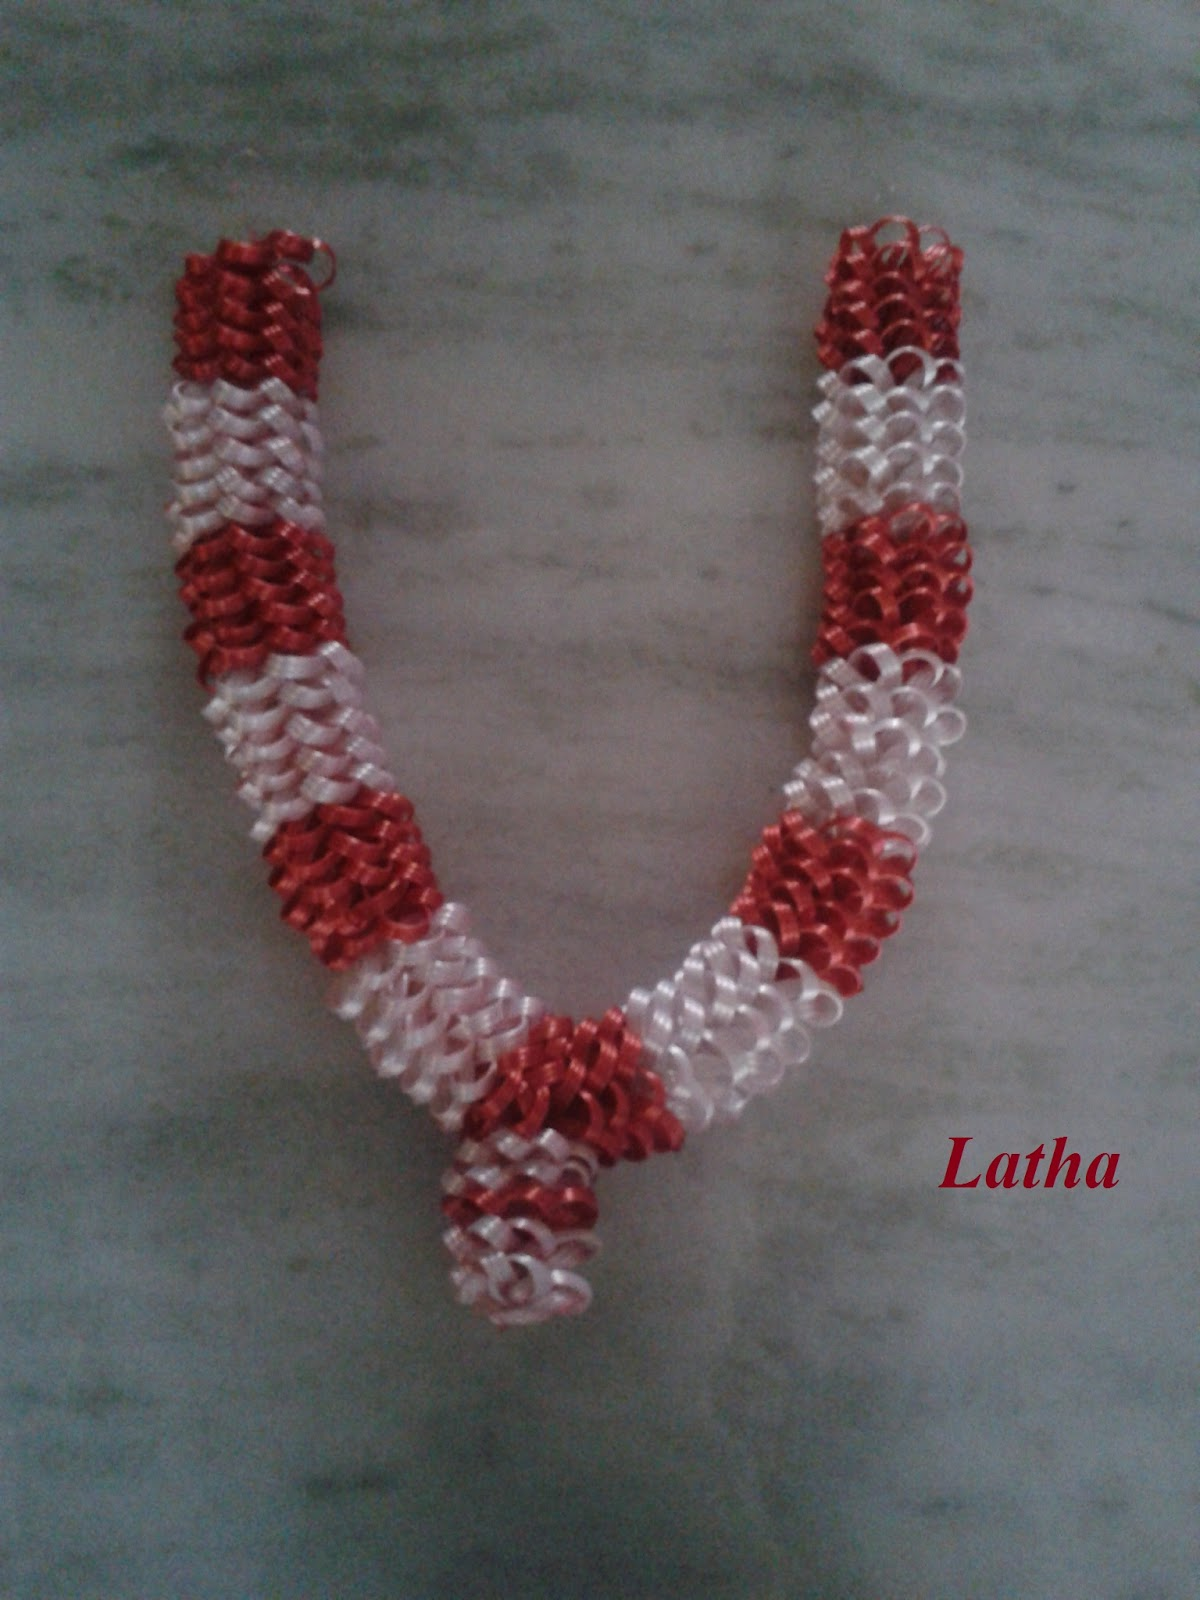 latha on crafts: swamy maalai with fish wire